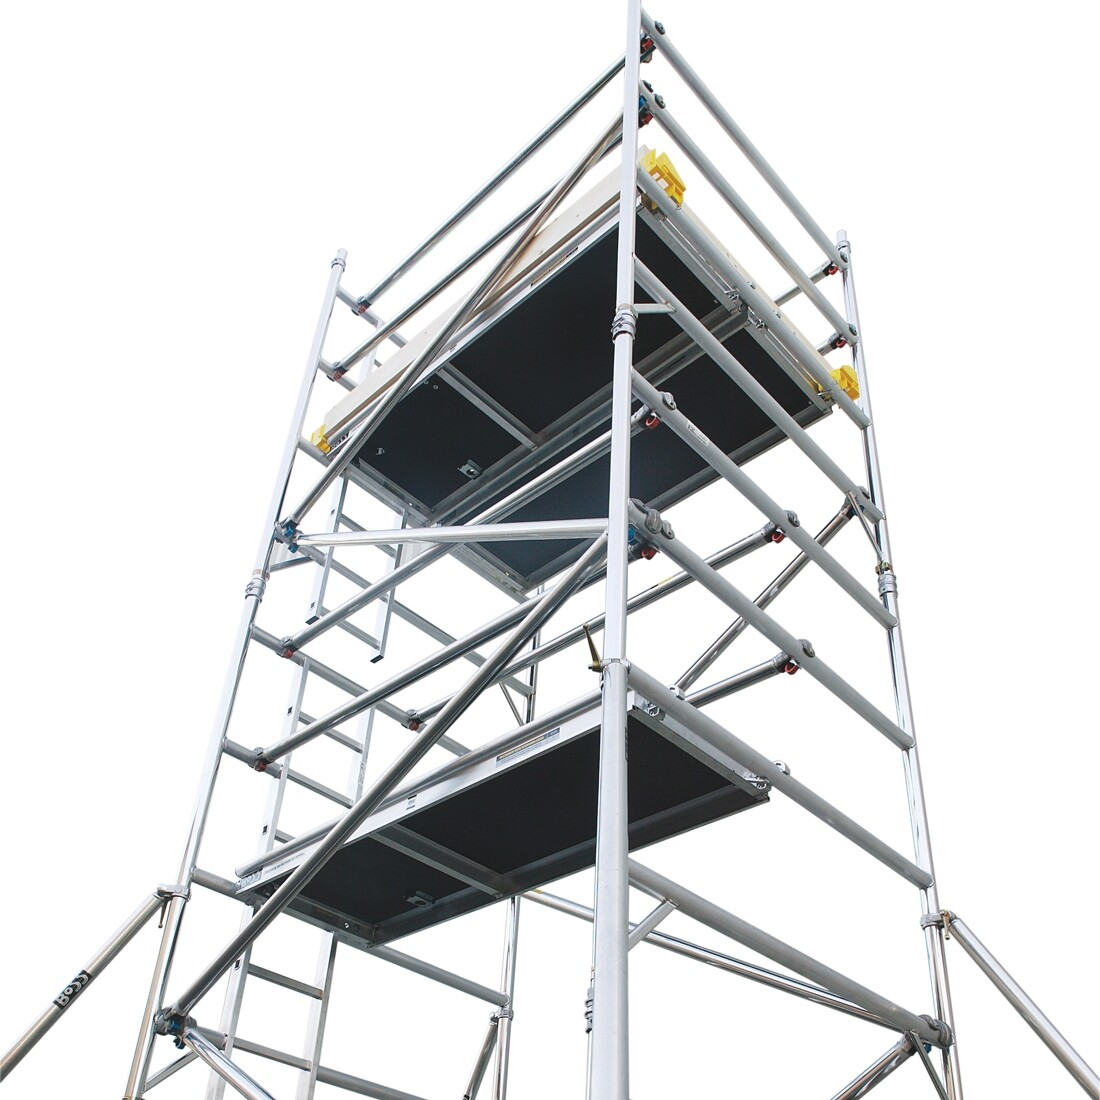 Mobile Tower Double Width - 1.4m wide x 1.8m long x 5.4m high